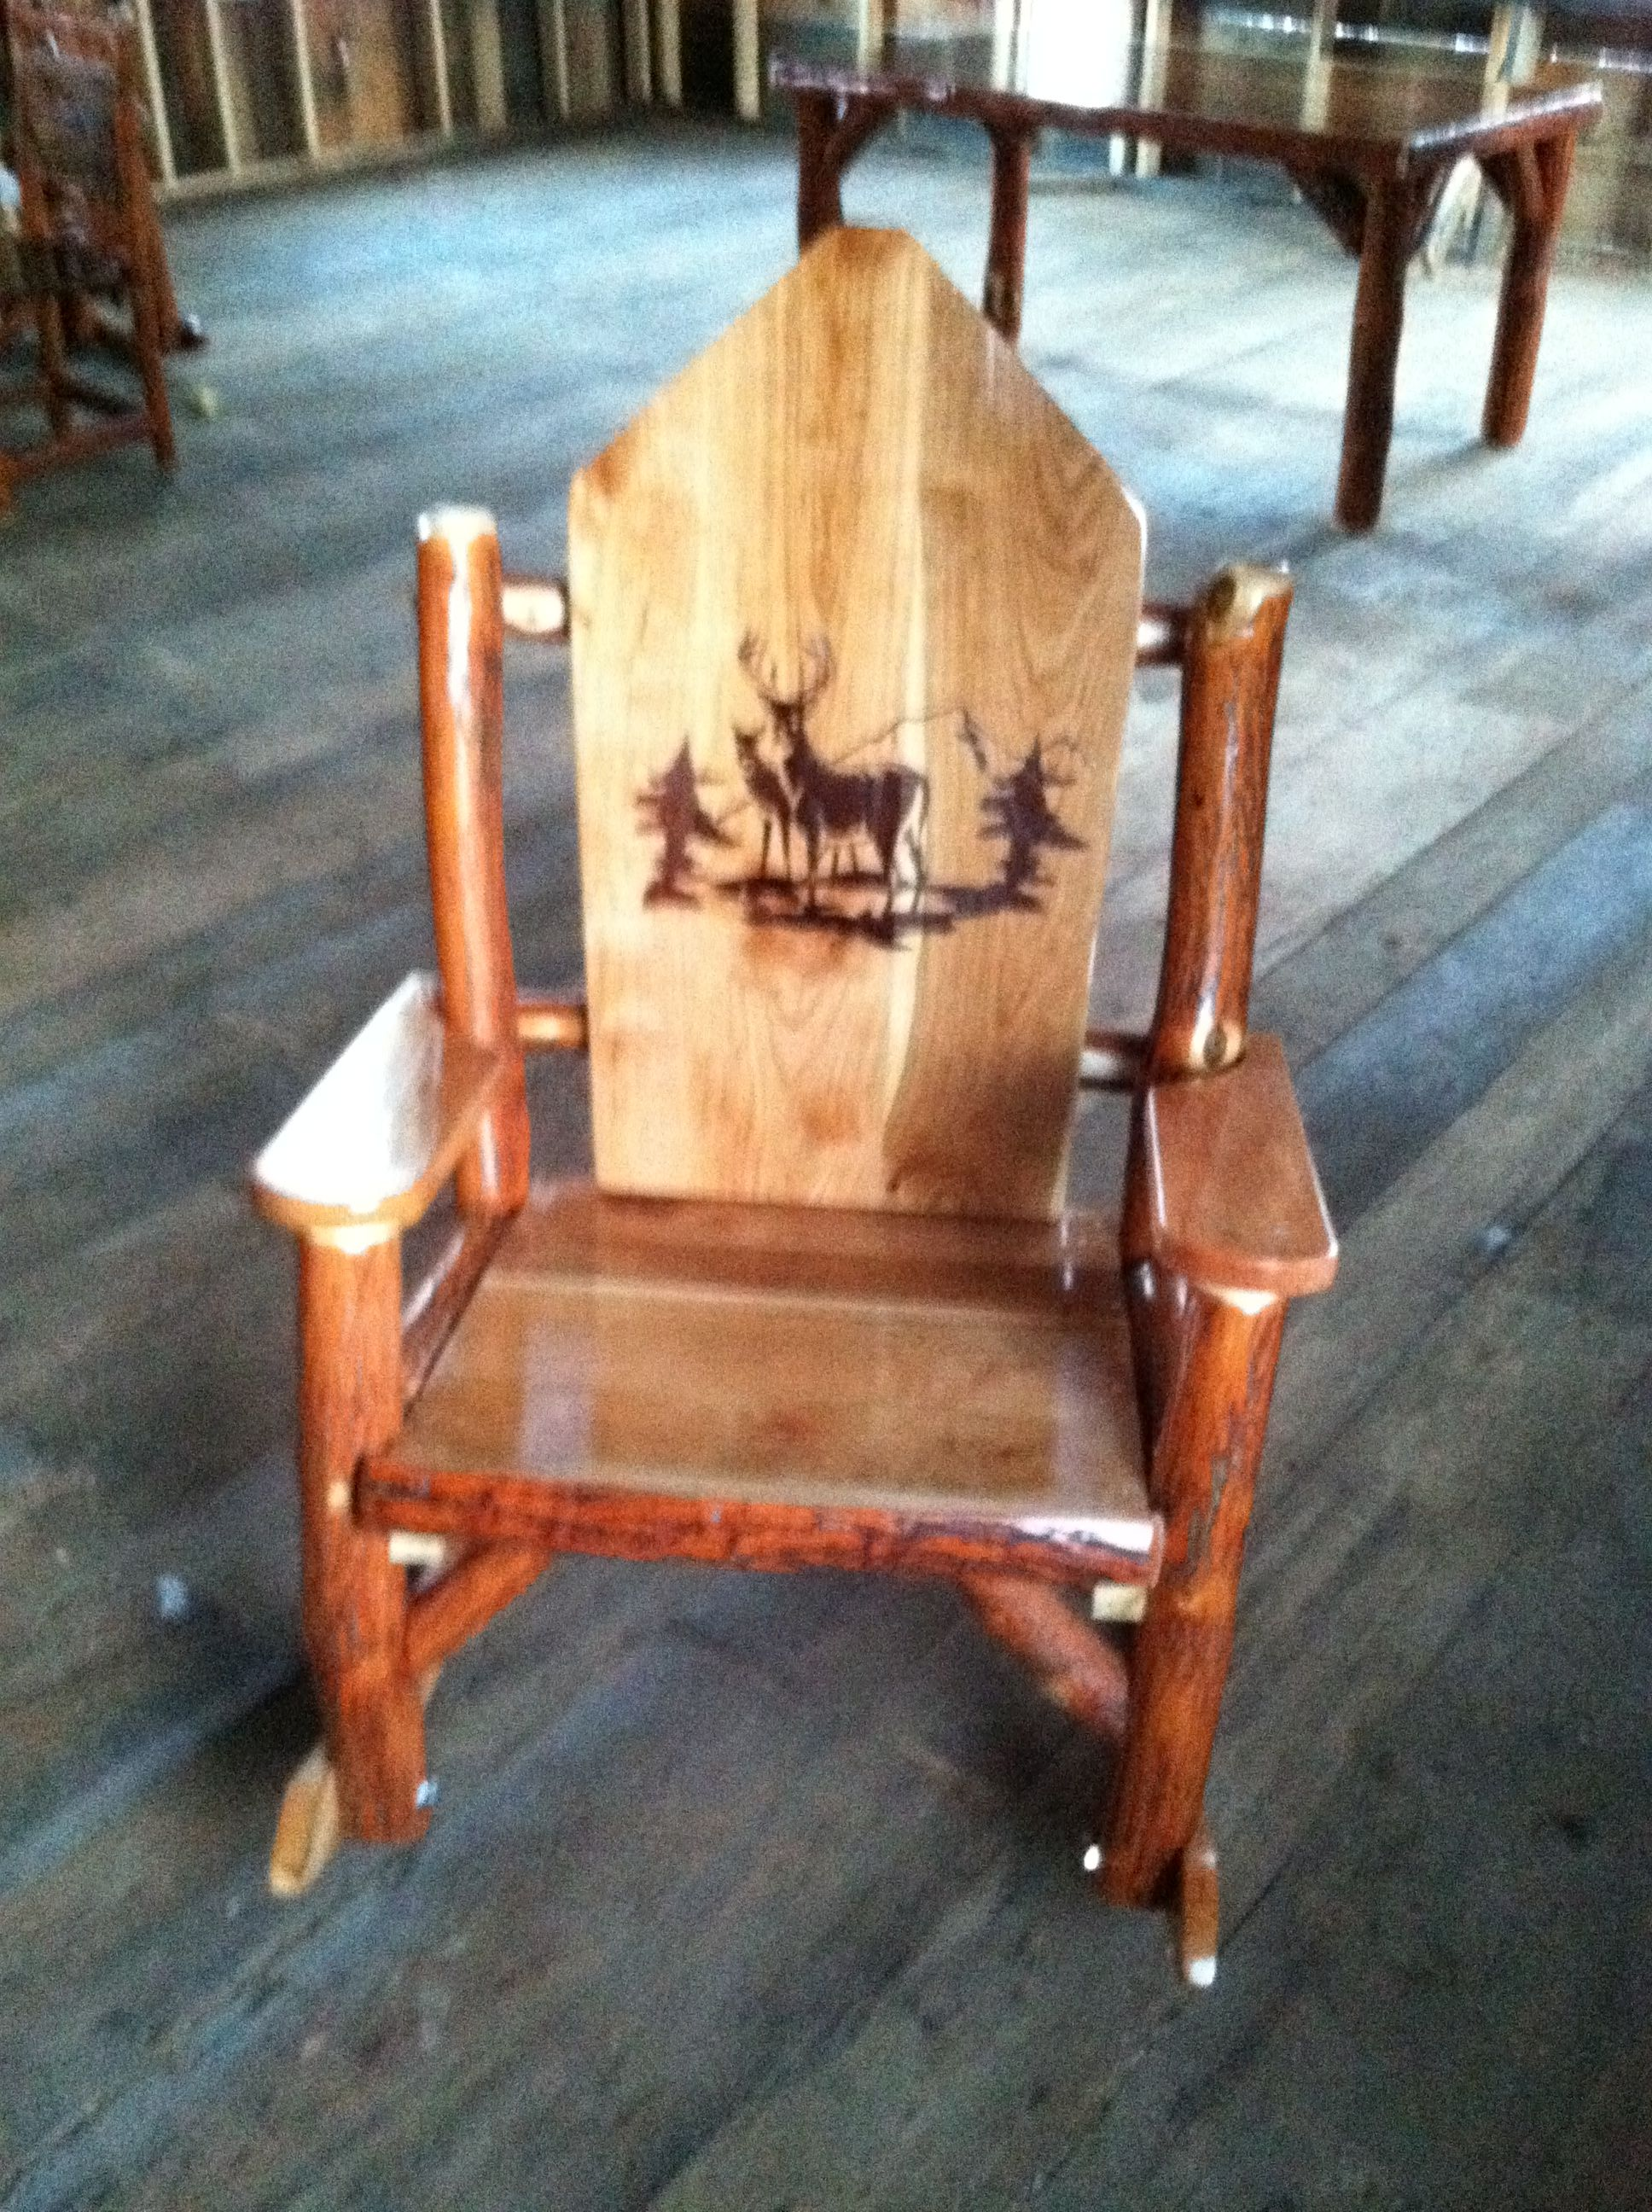 Deer Antler Rocking Chair Windsor Chairs Black Rustic And Stylish This Sassafras Is A